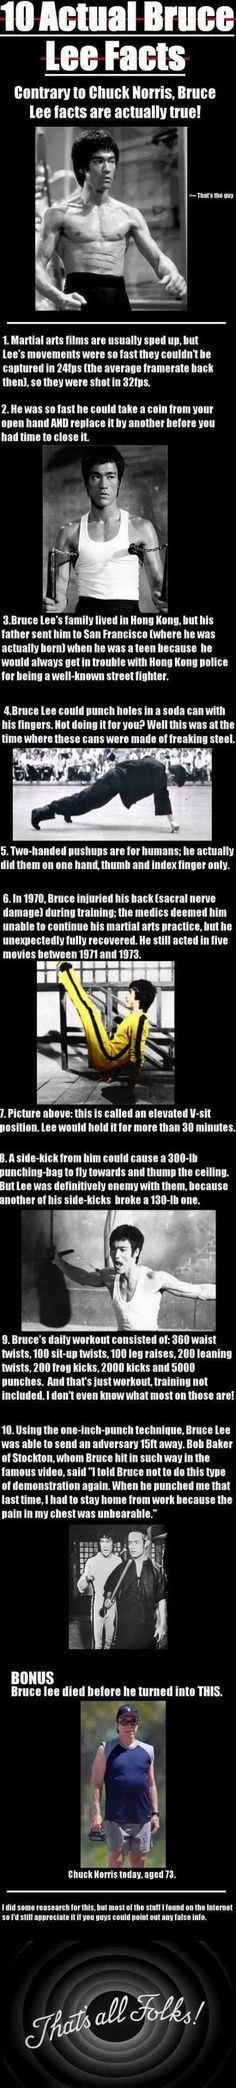 Ten Actual Bruce Lee Facts